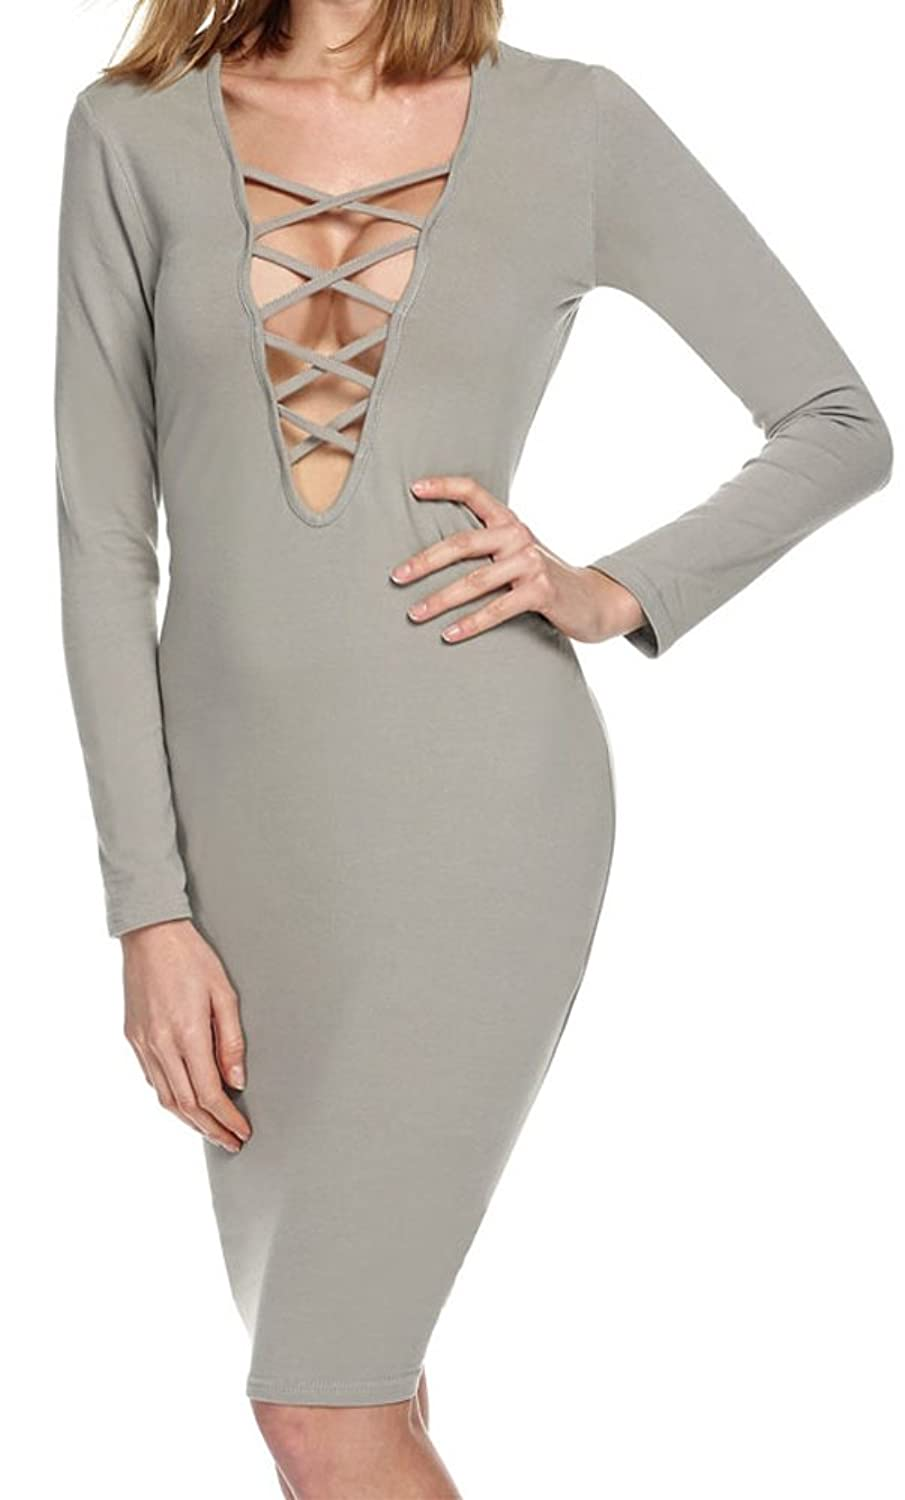 POGTMM Women's Sexy Long Sleeve Deep V Neck Cross Bandage Stretchy Slim Bodycon Cocktail Party Dress